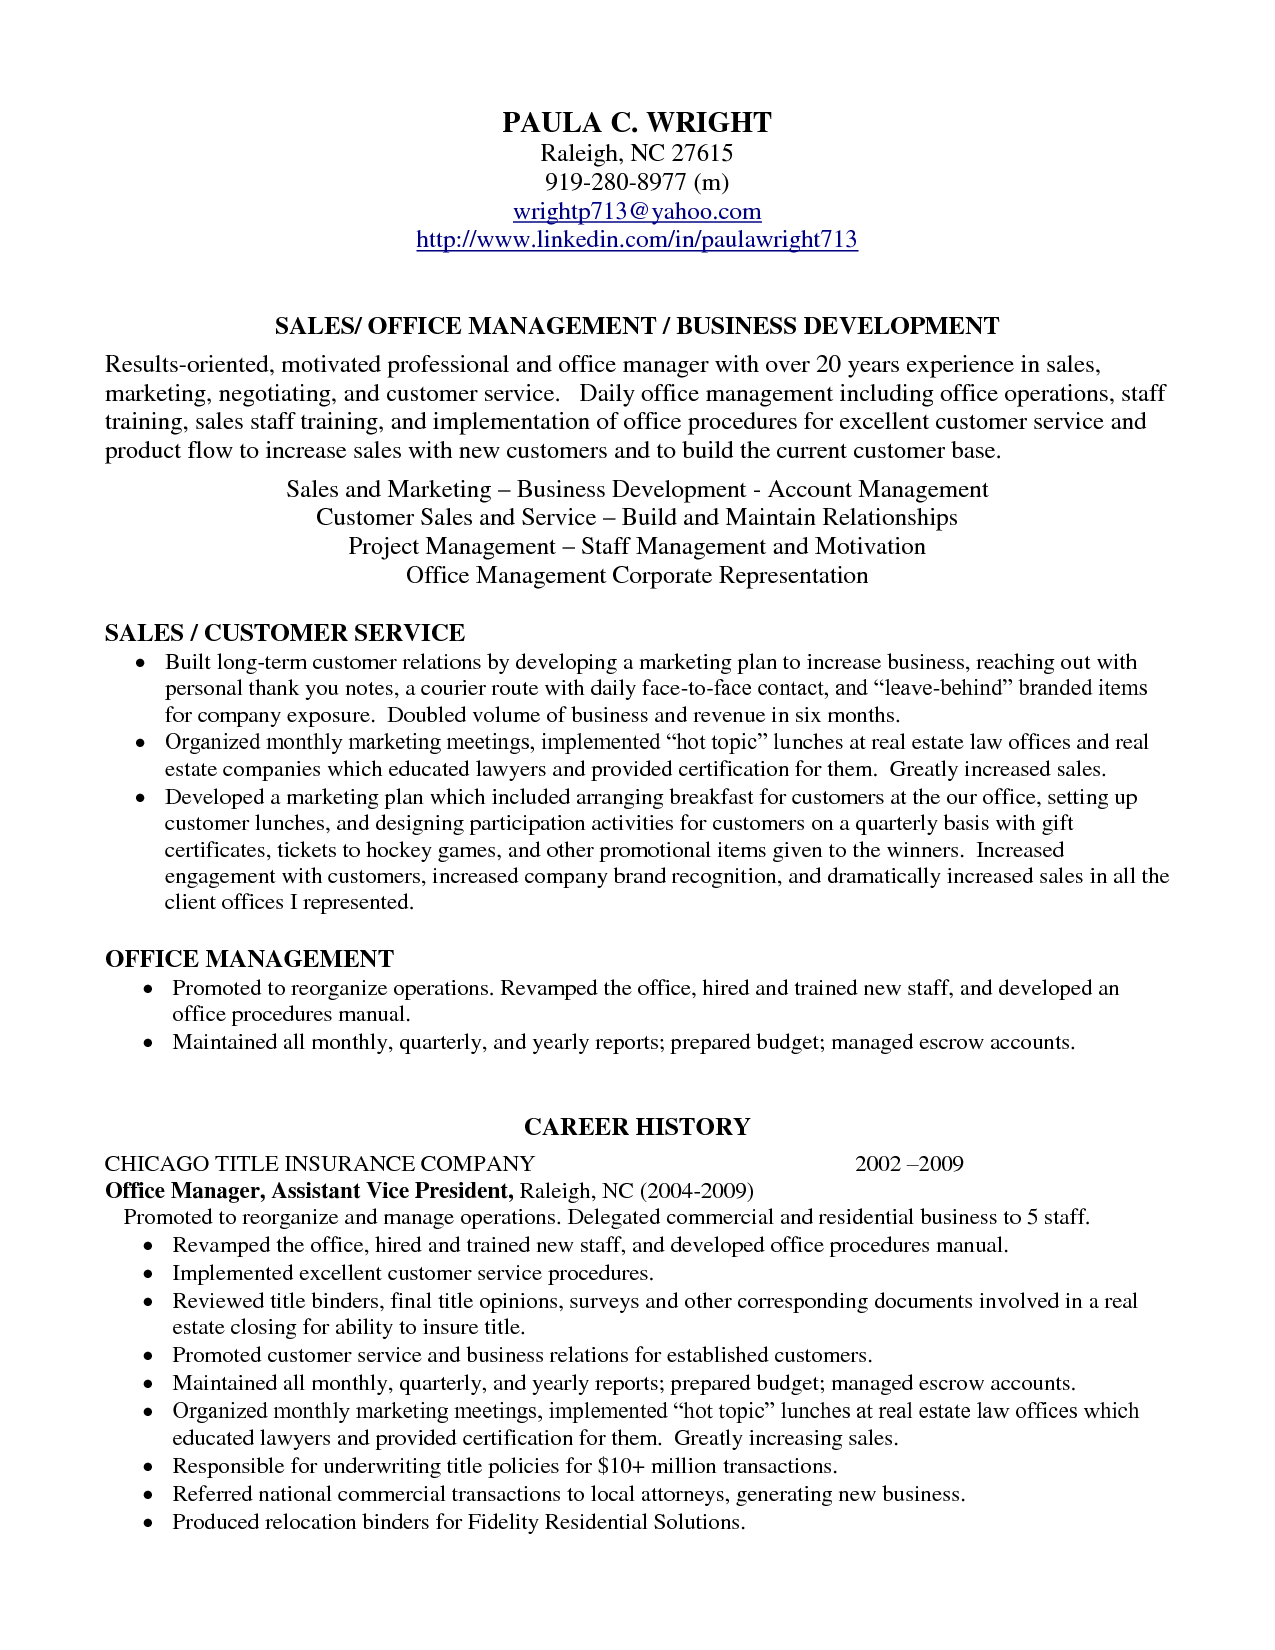 Example Resume Profile Matchboardco - Sample profile statement for resume